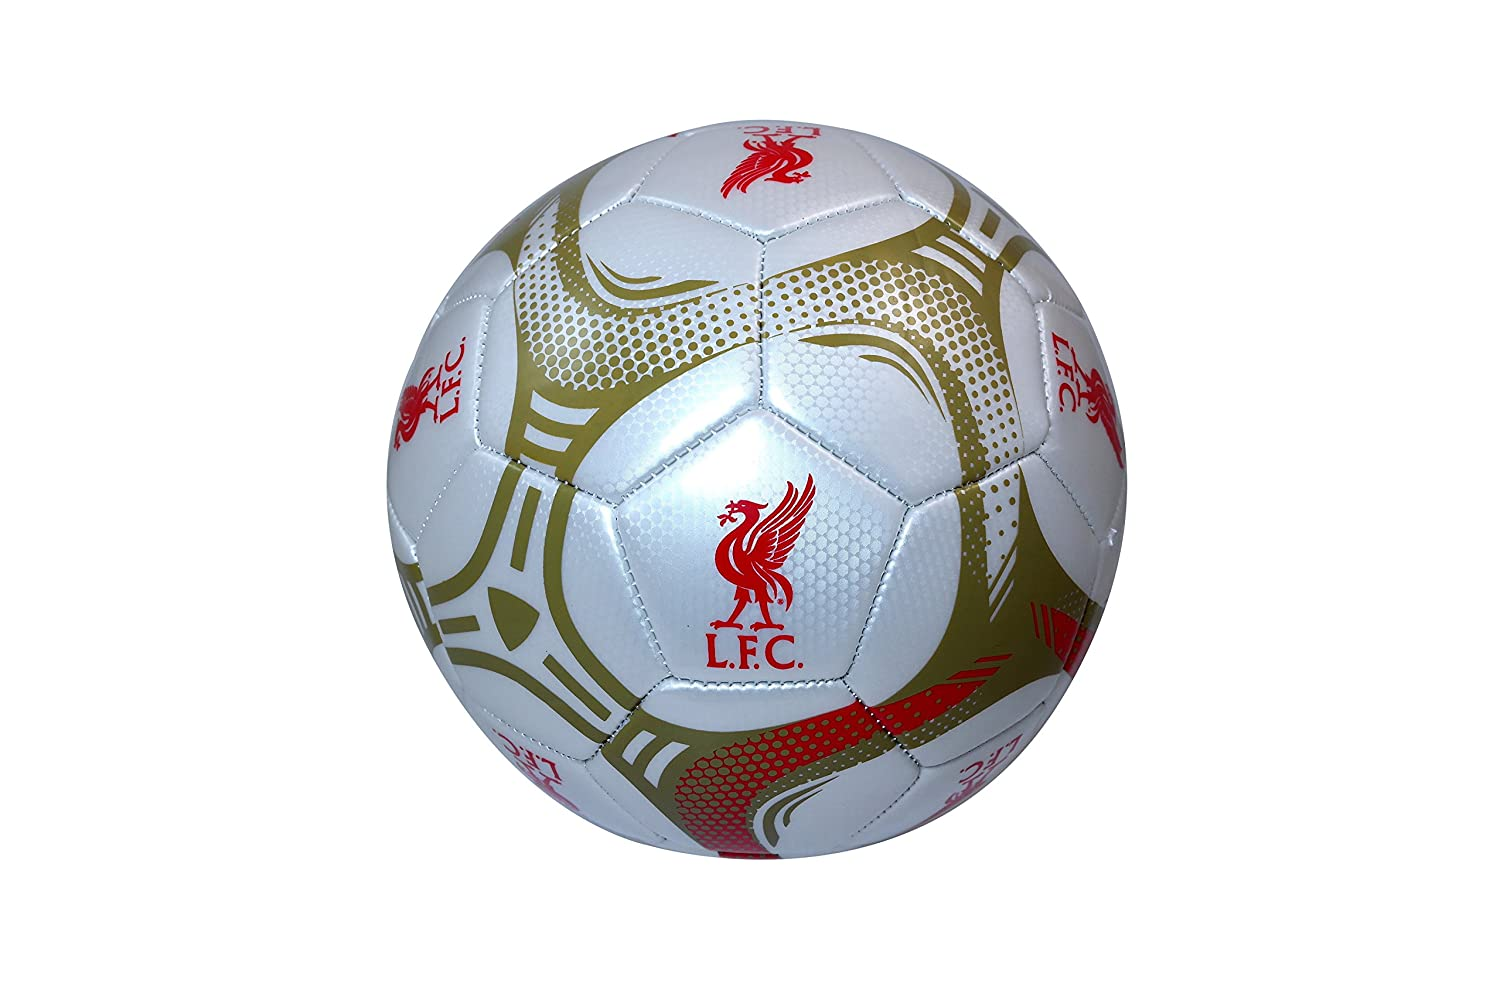 Liverpool FC Authentic Official Licensedサッカーボールサイズ5 -002   B01NGTXL4Z